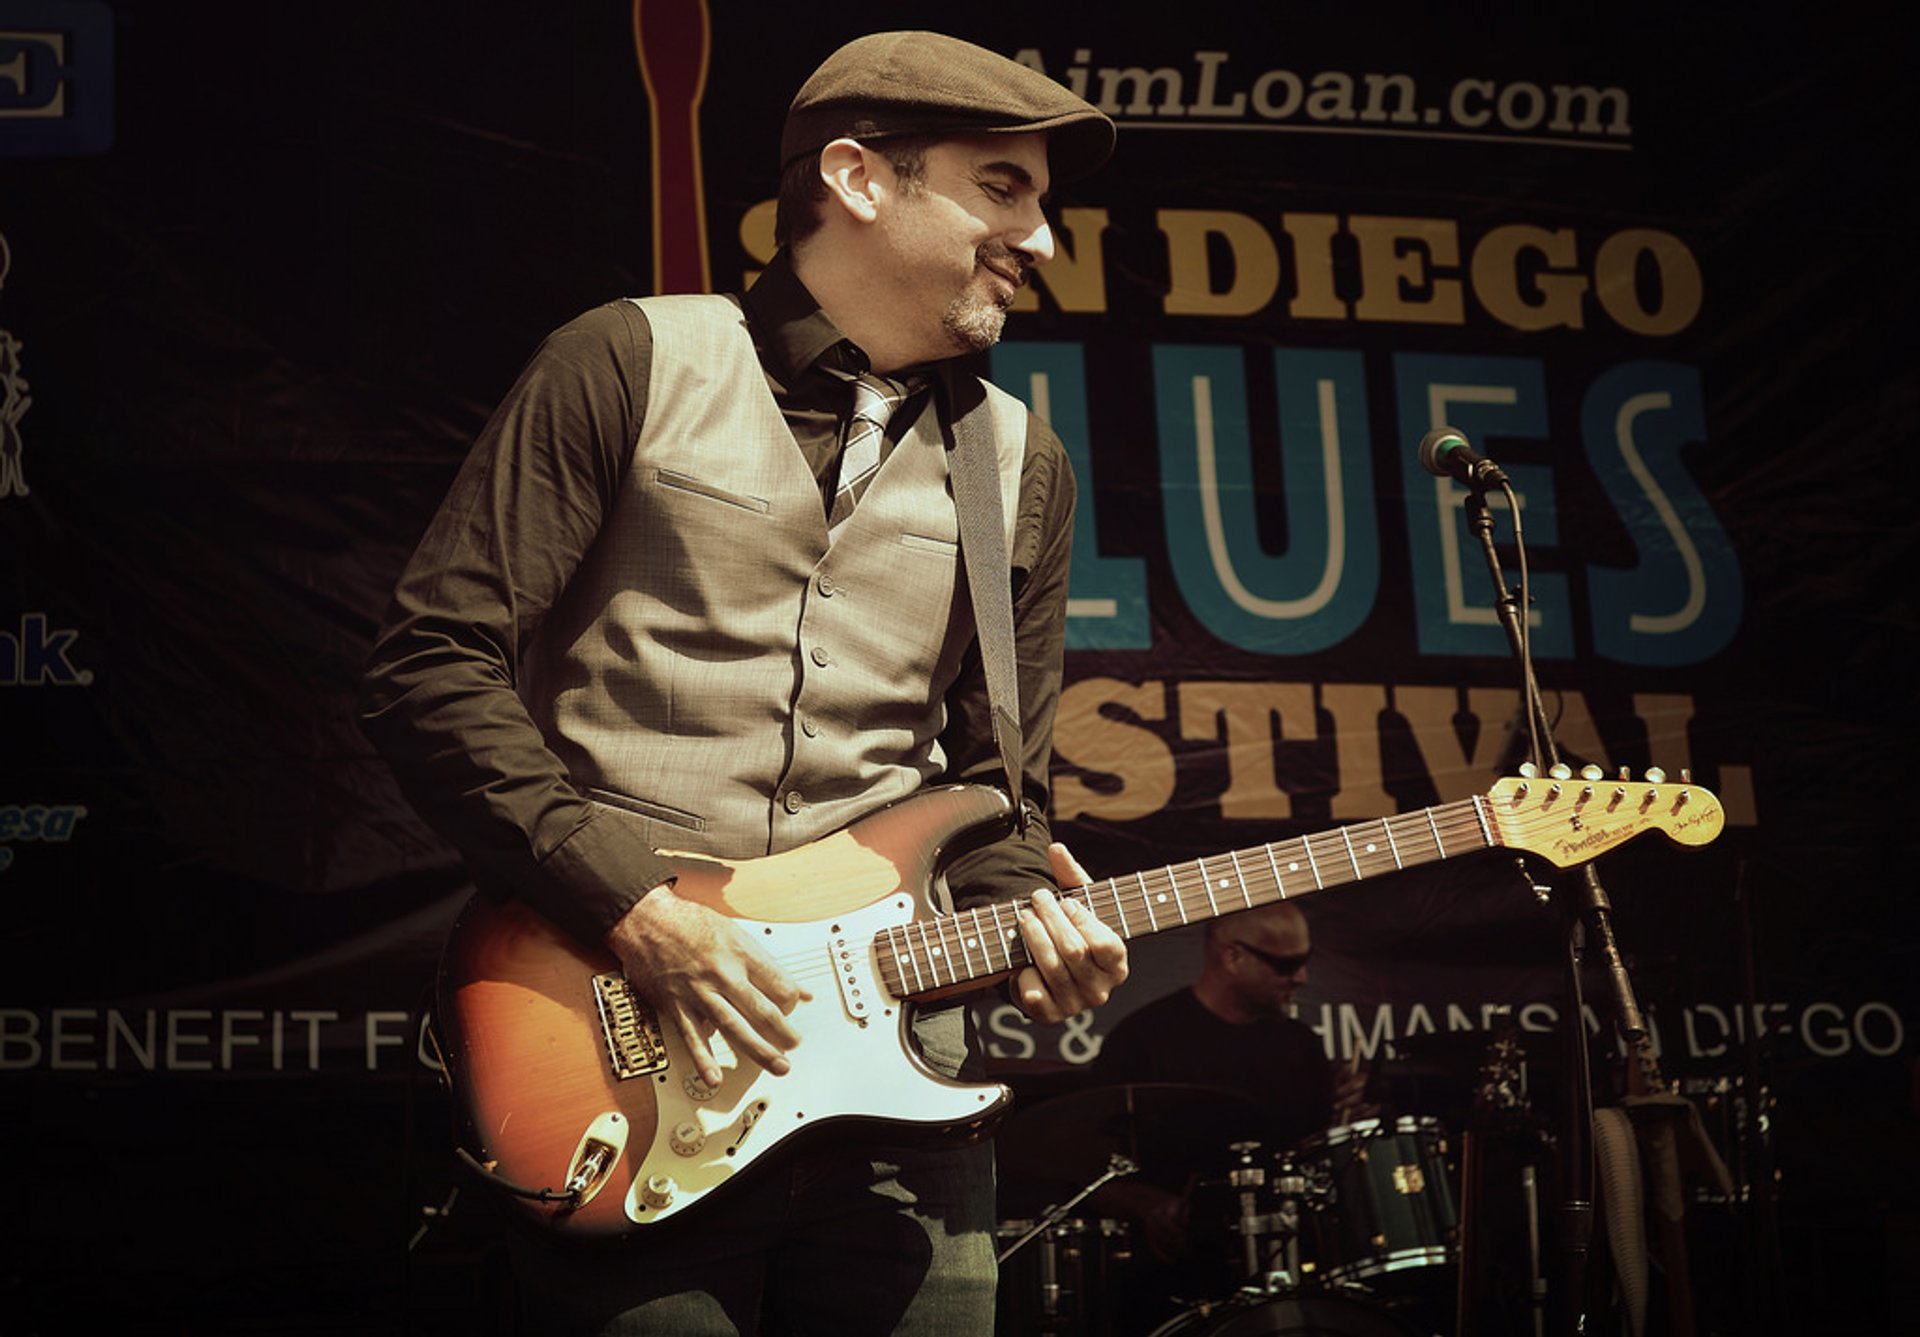 San Diego Blues Festival in San Diego 2020 - Best Time